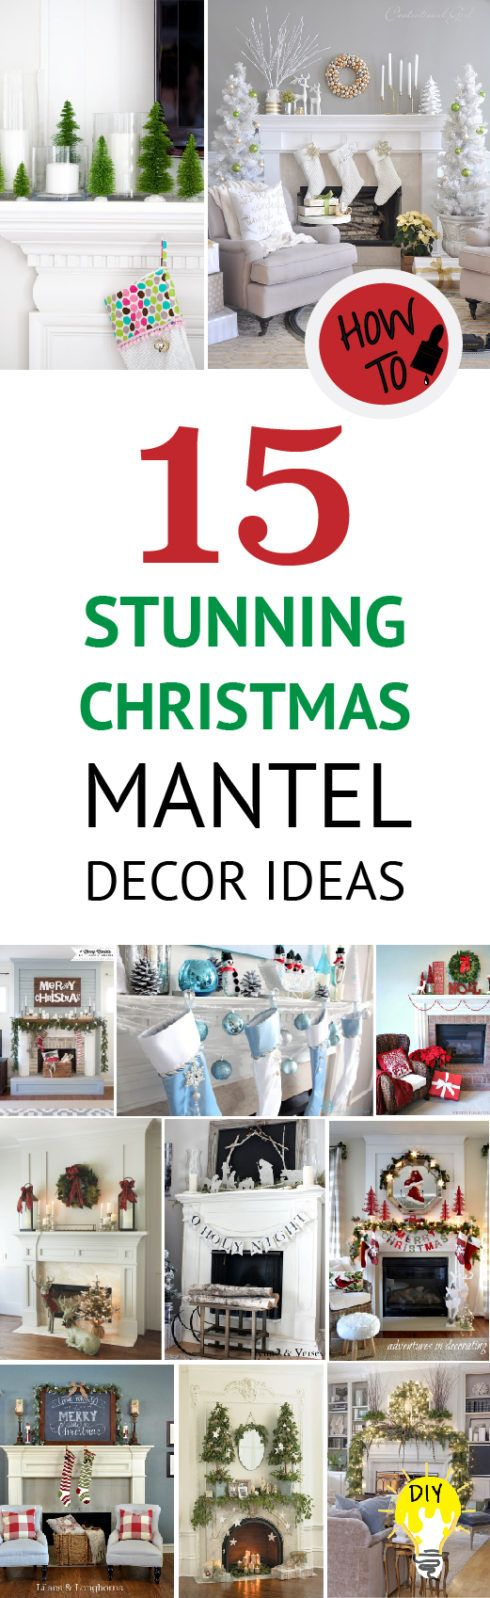 The Mantel is a great spotlight for Christmas decor. Here are several Christmas mantel decor ideas to fit every home, style, and budget.